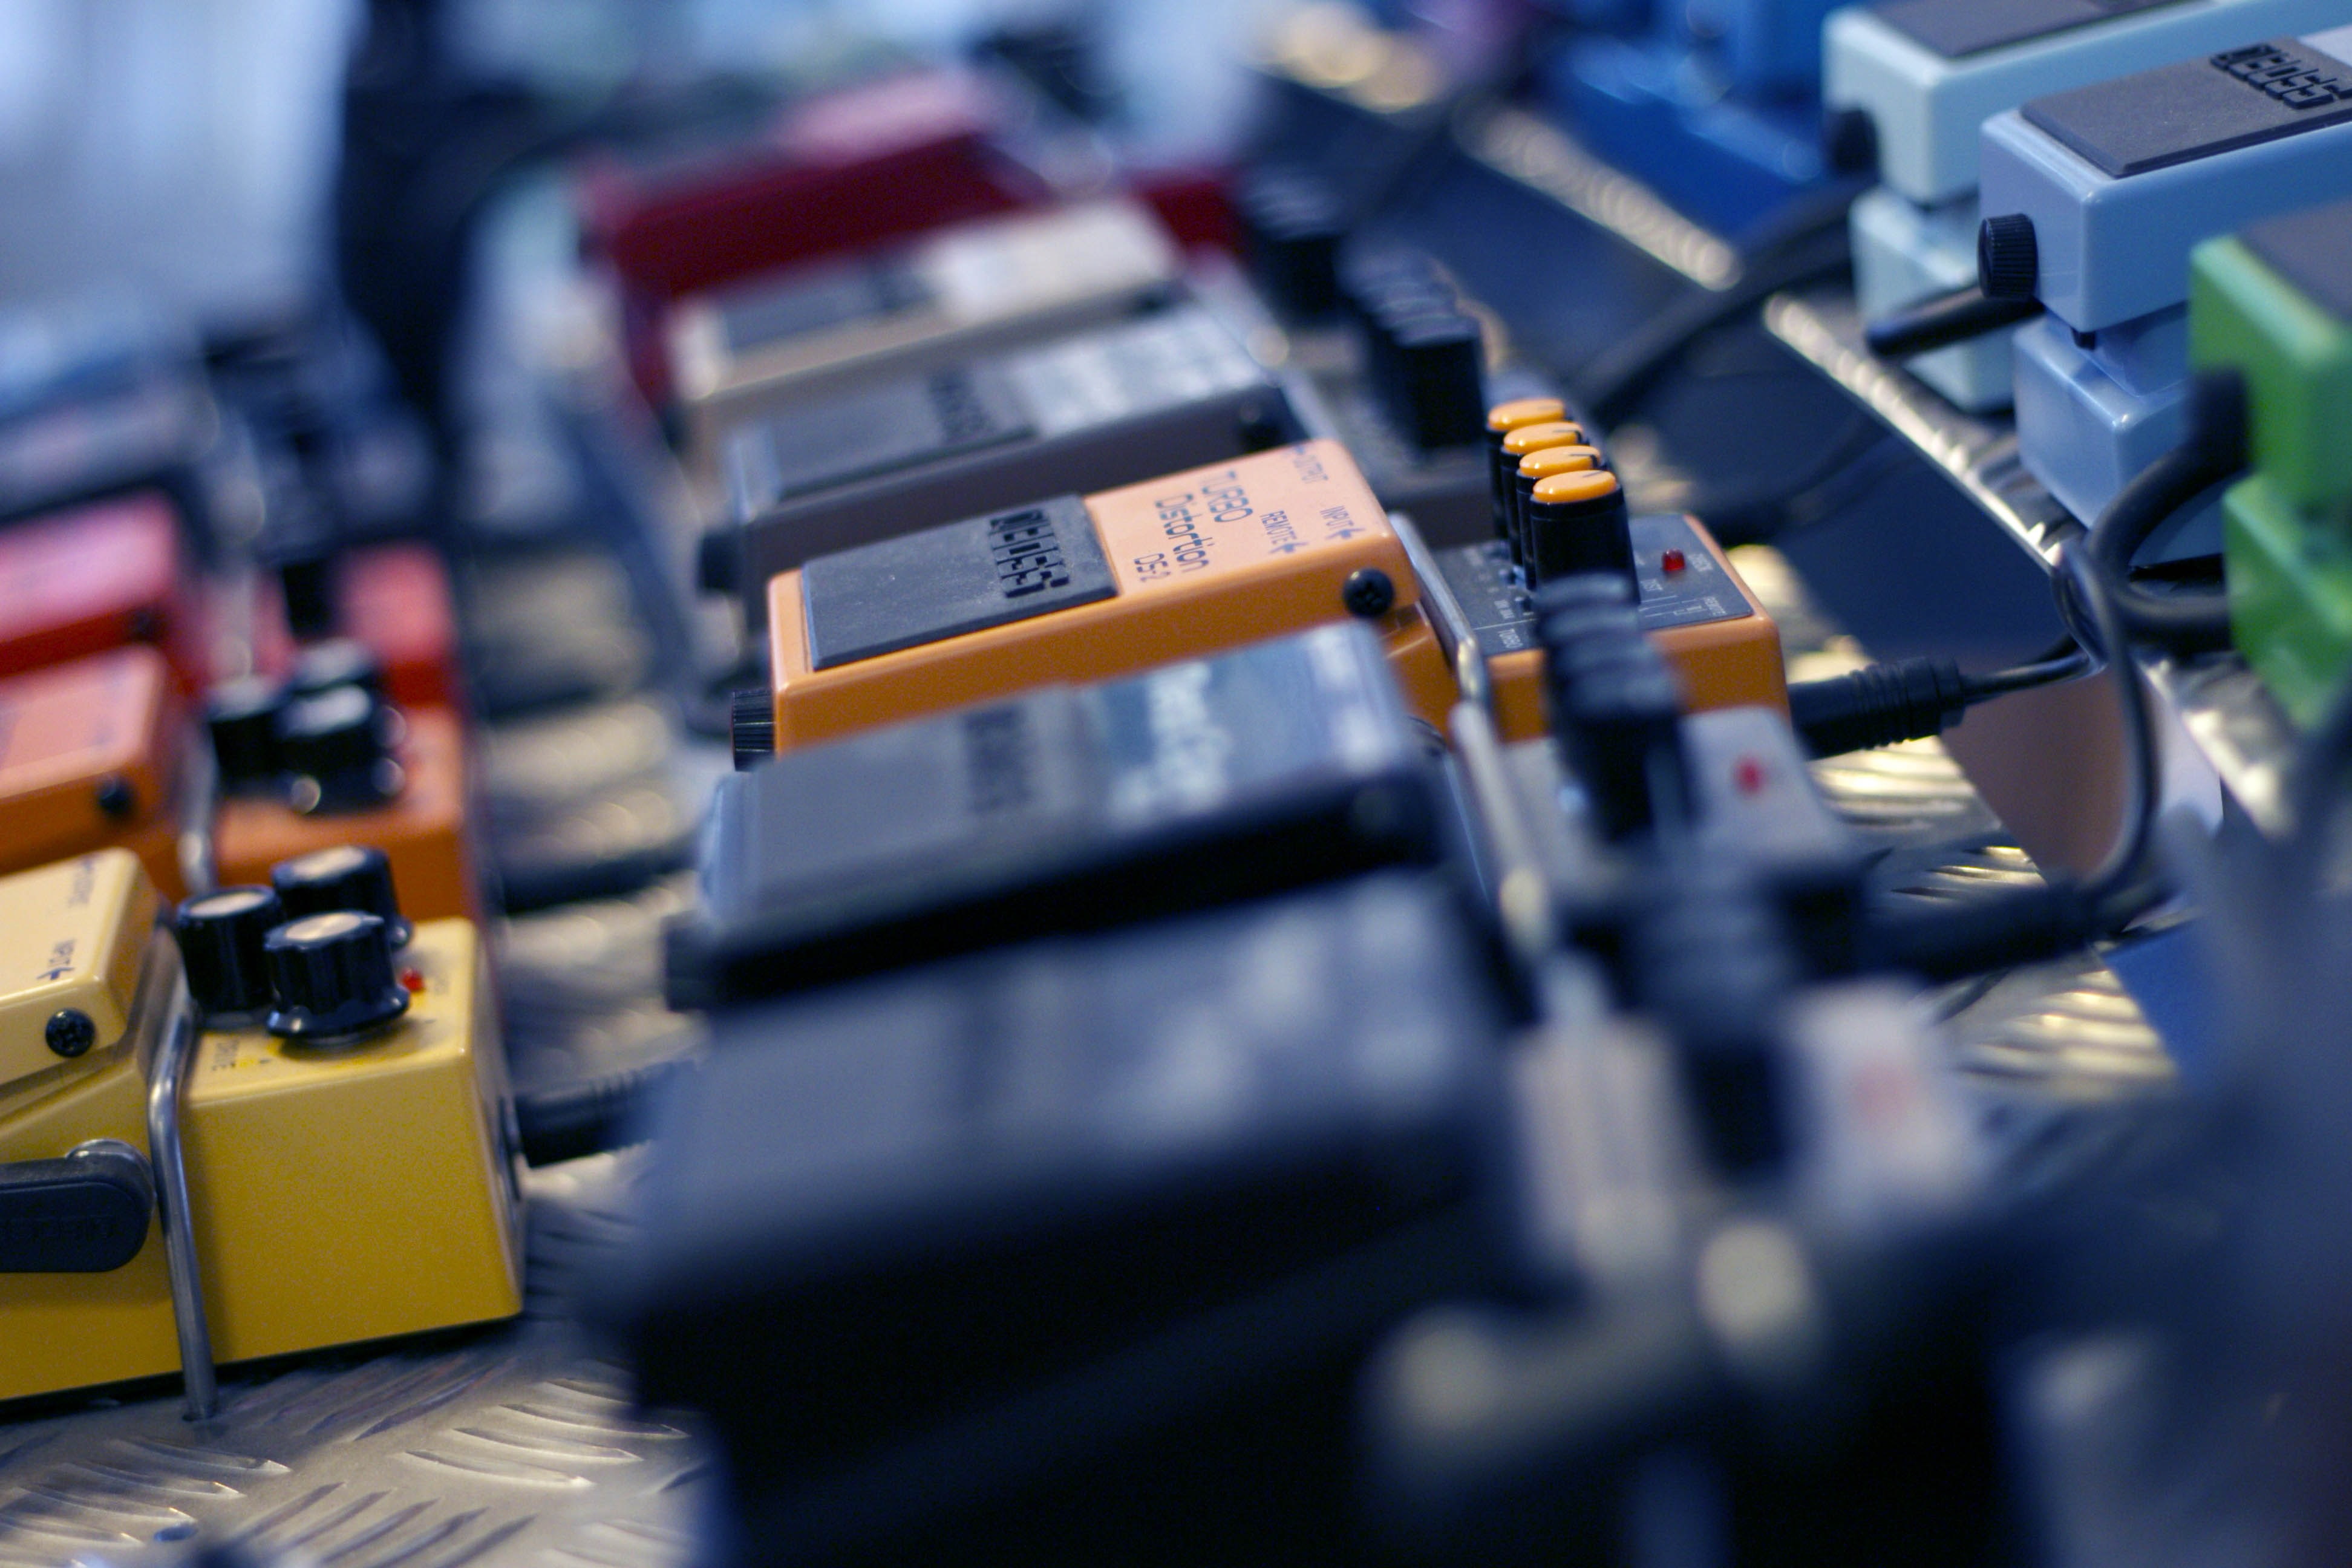 selective focus photo of guitar pedals